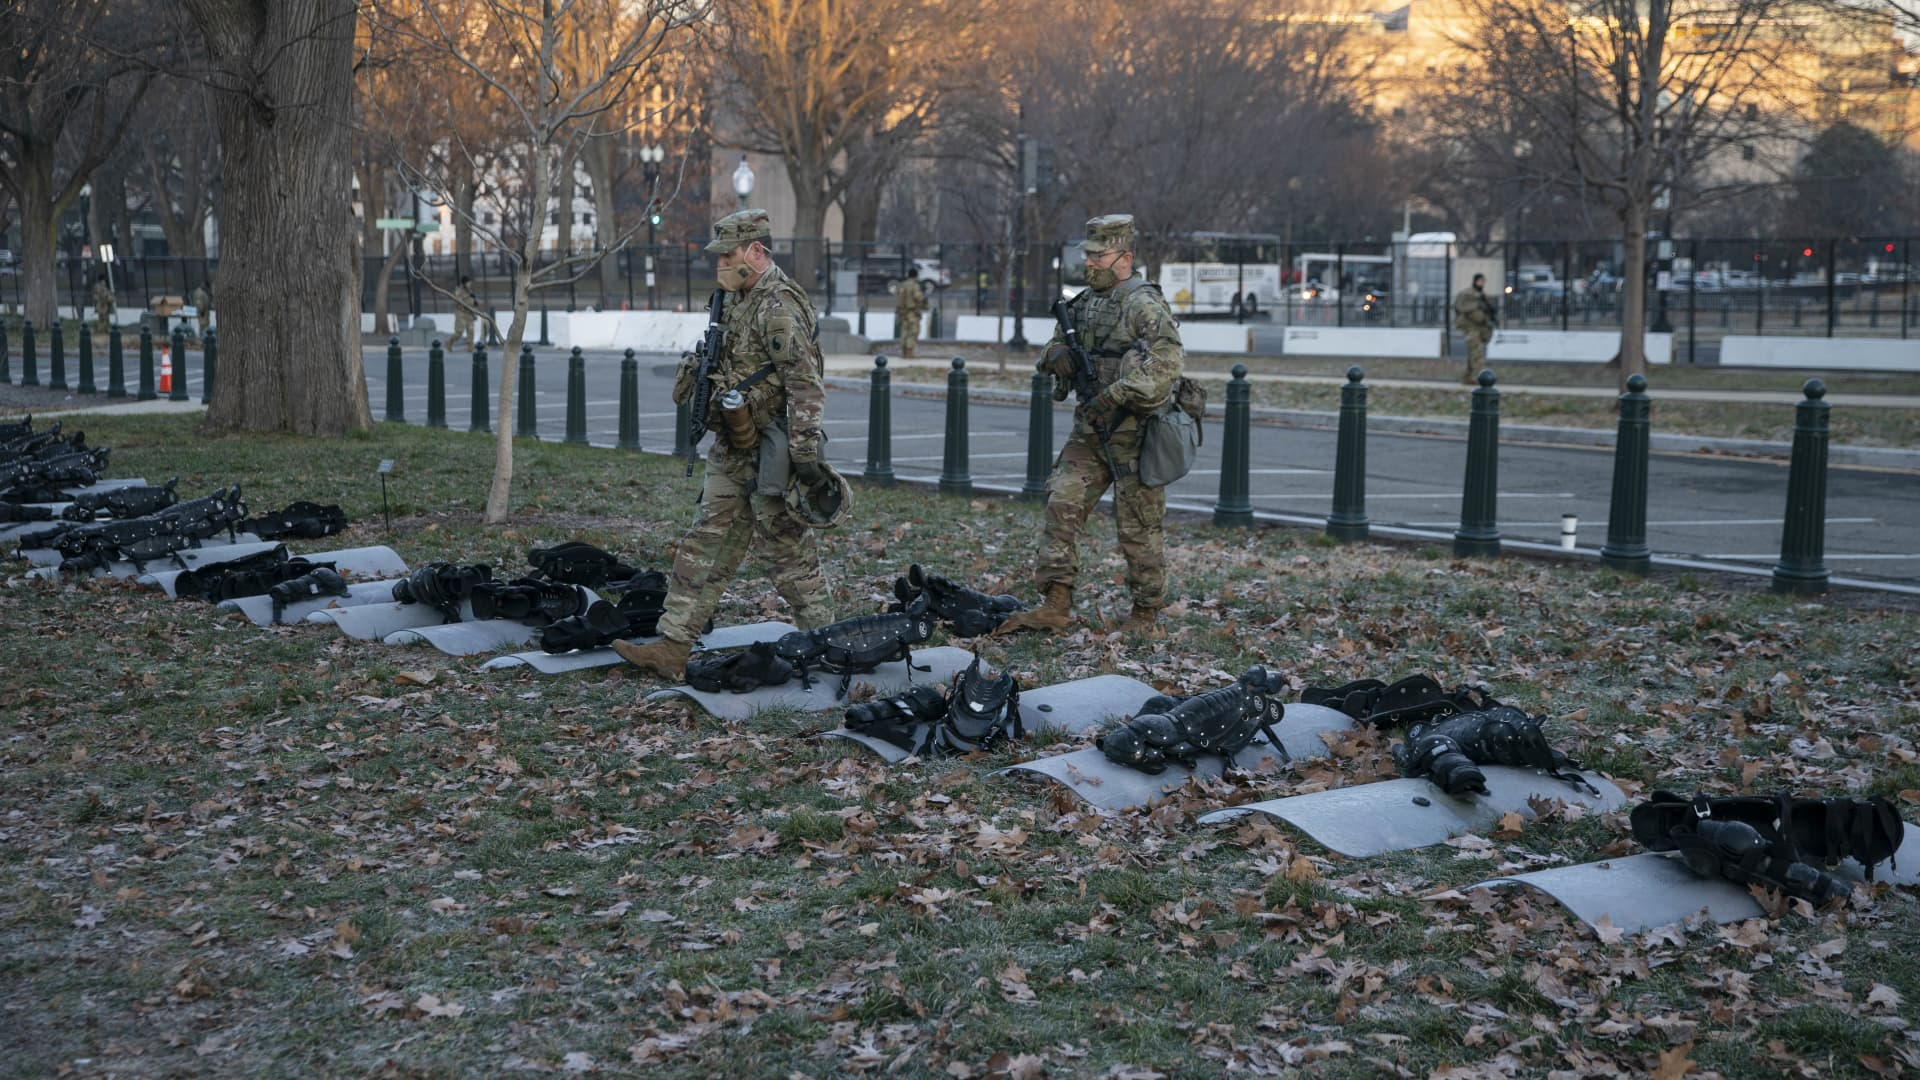 Members of the National Guard stand in front of riot shields and body armor on the lawn of the U.S. Capitol in Washington, D.C., U.S., on Wednesday, Jan. 13, 2021.